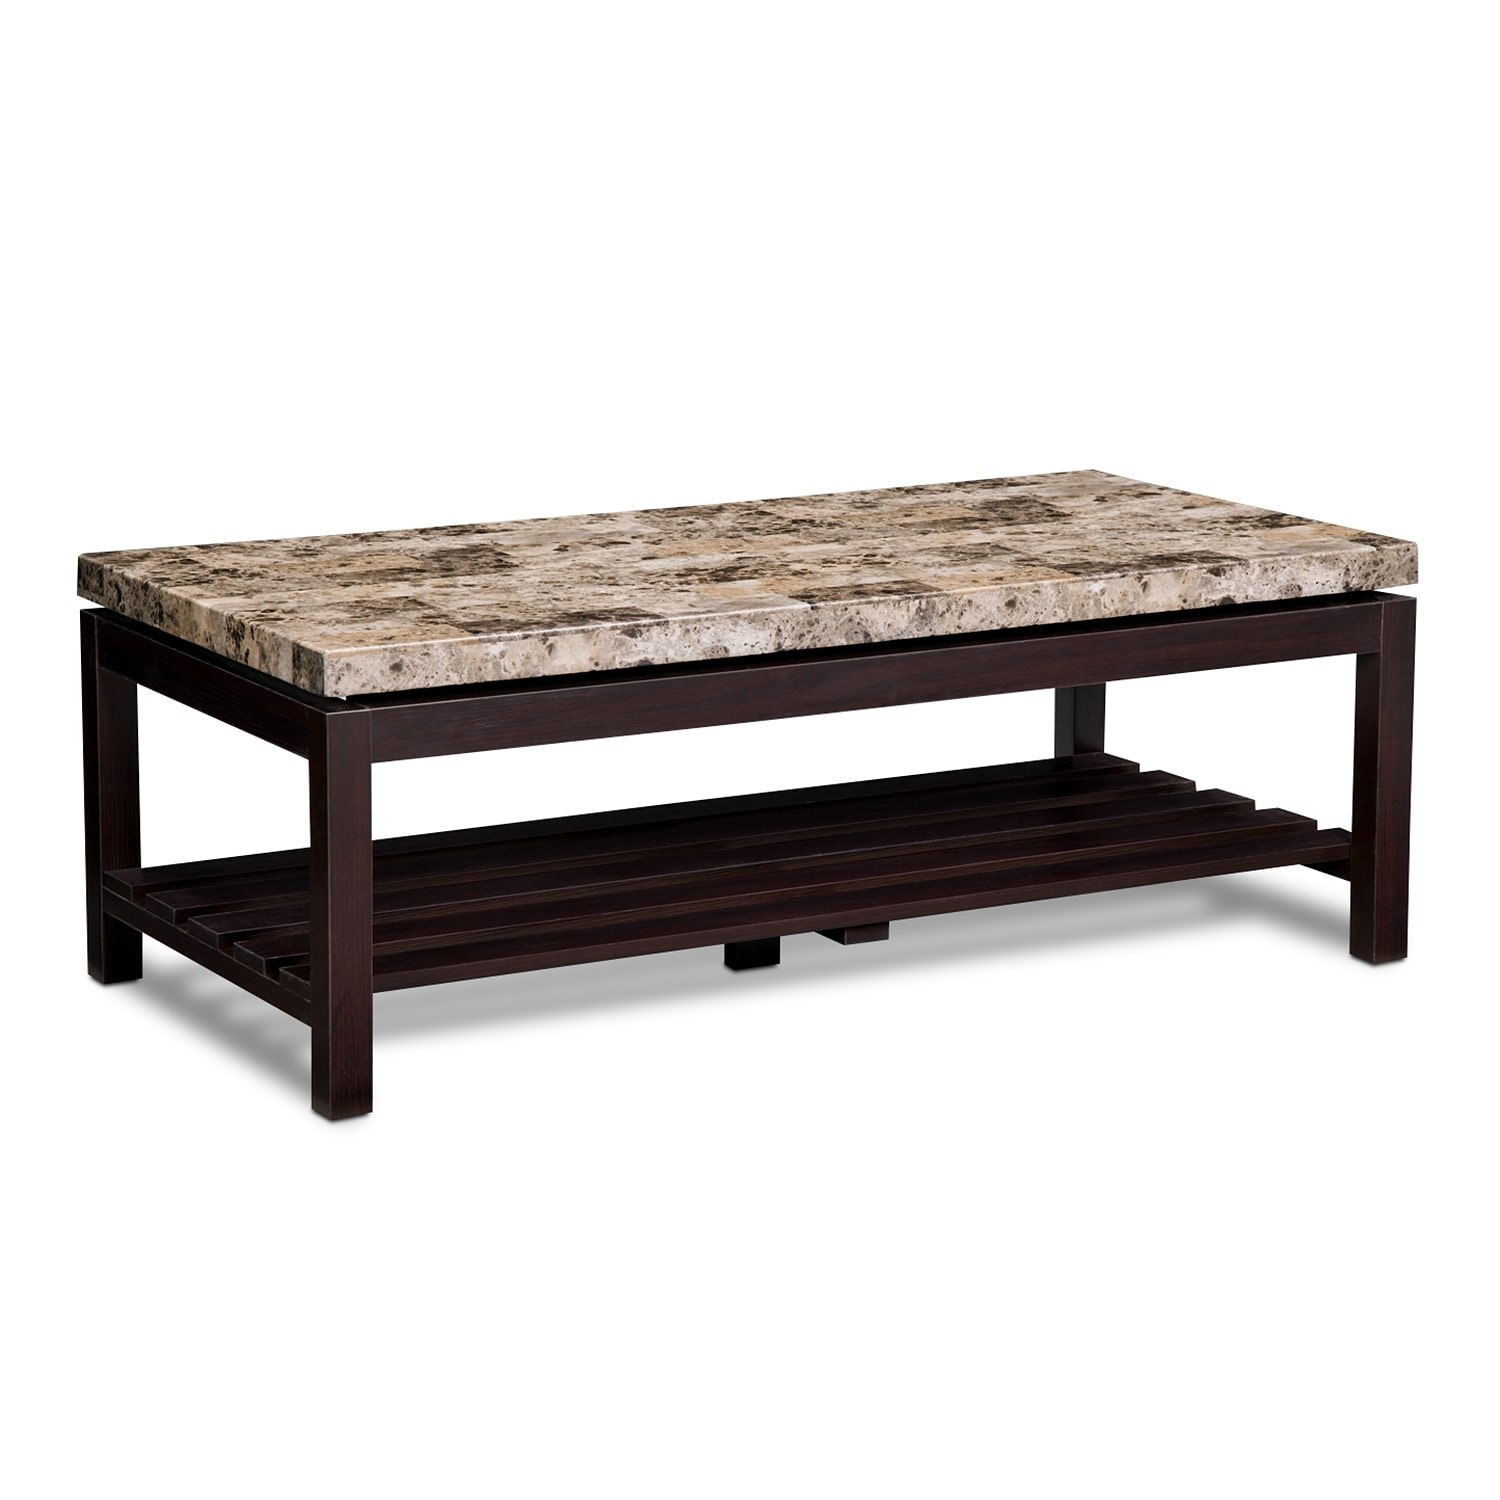 Accent and Occasional Furniture - Audra Coffee Table - Merlot